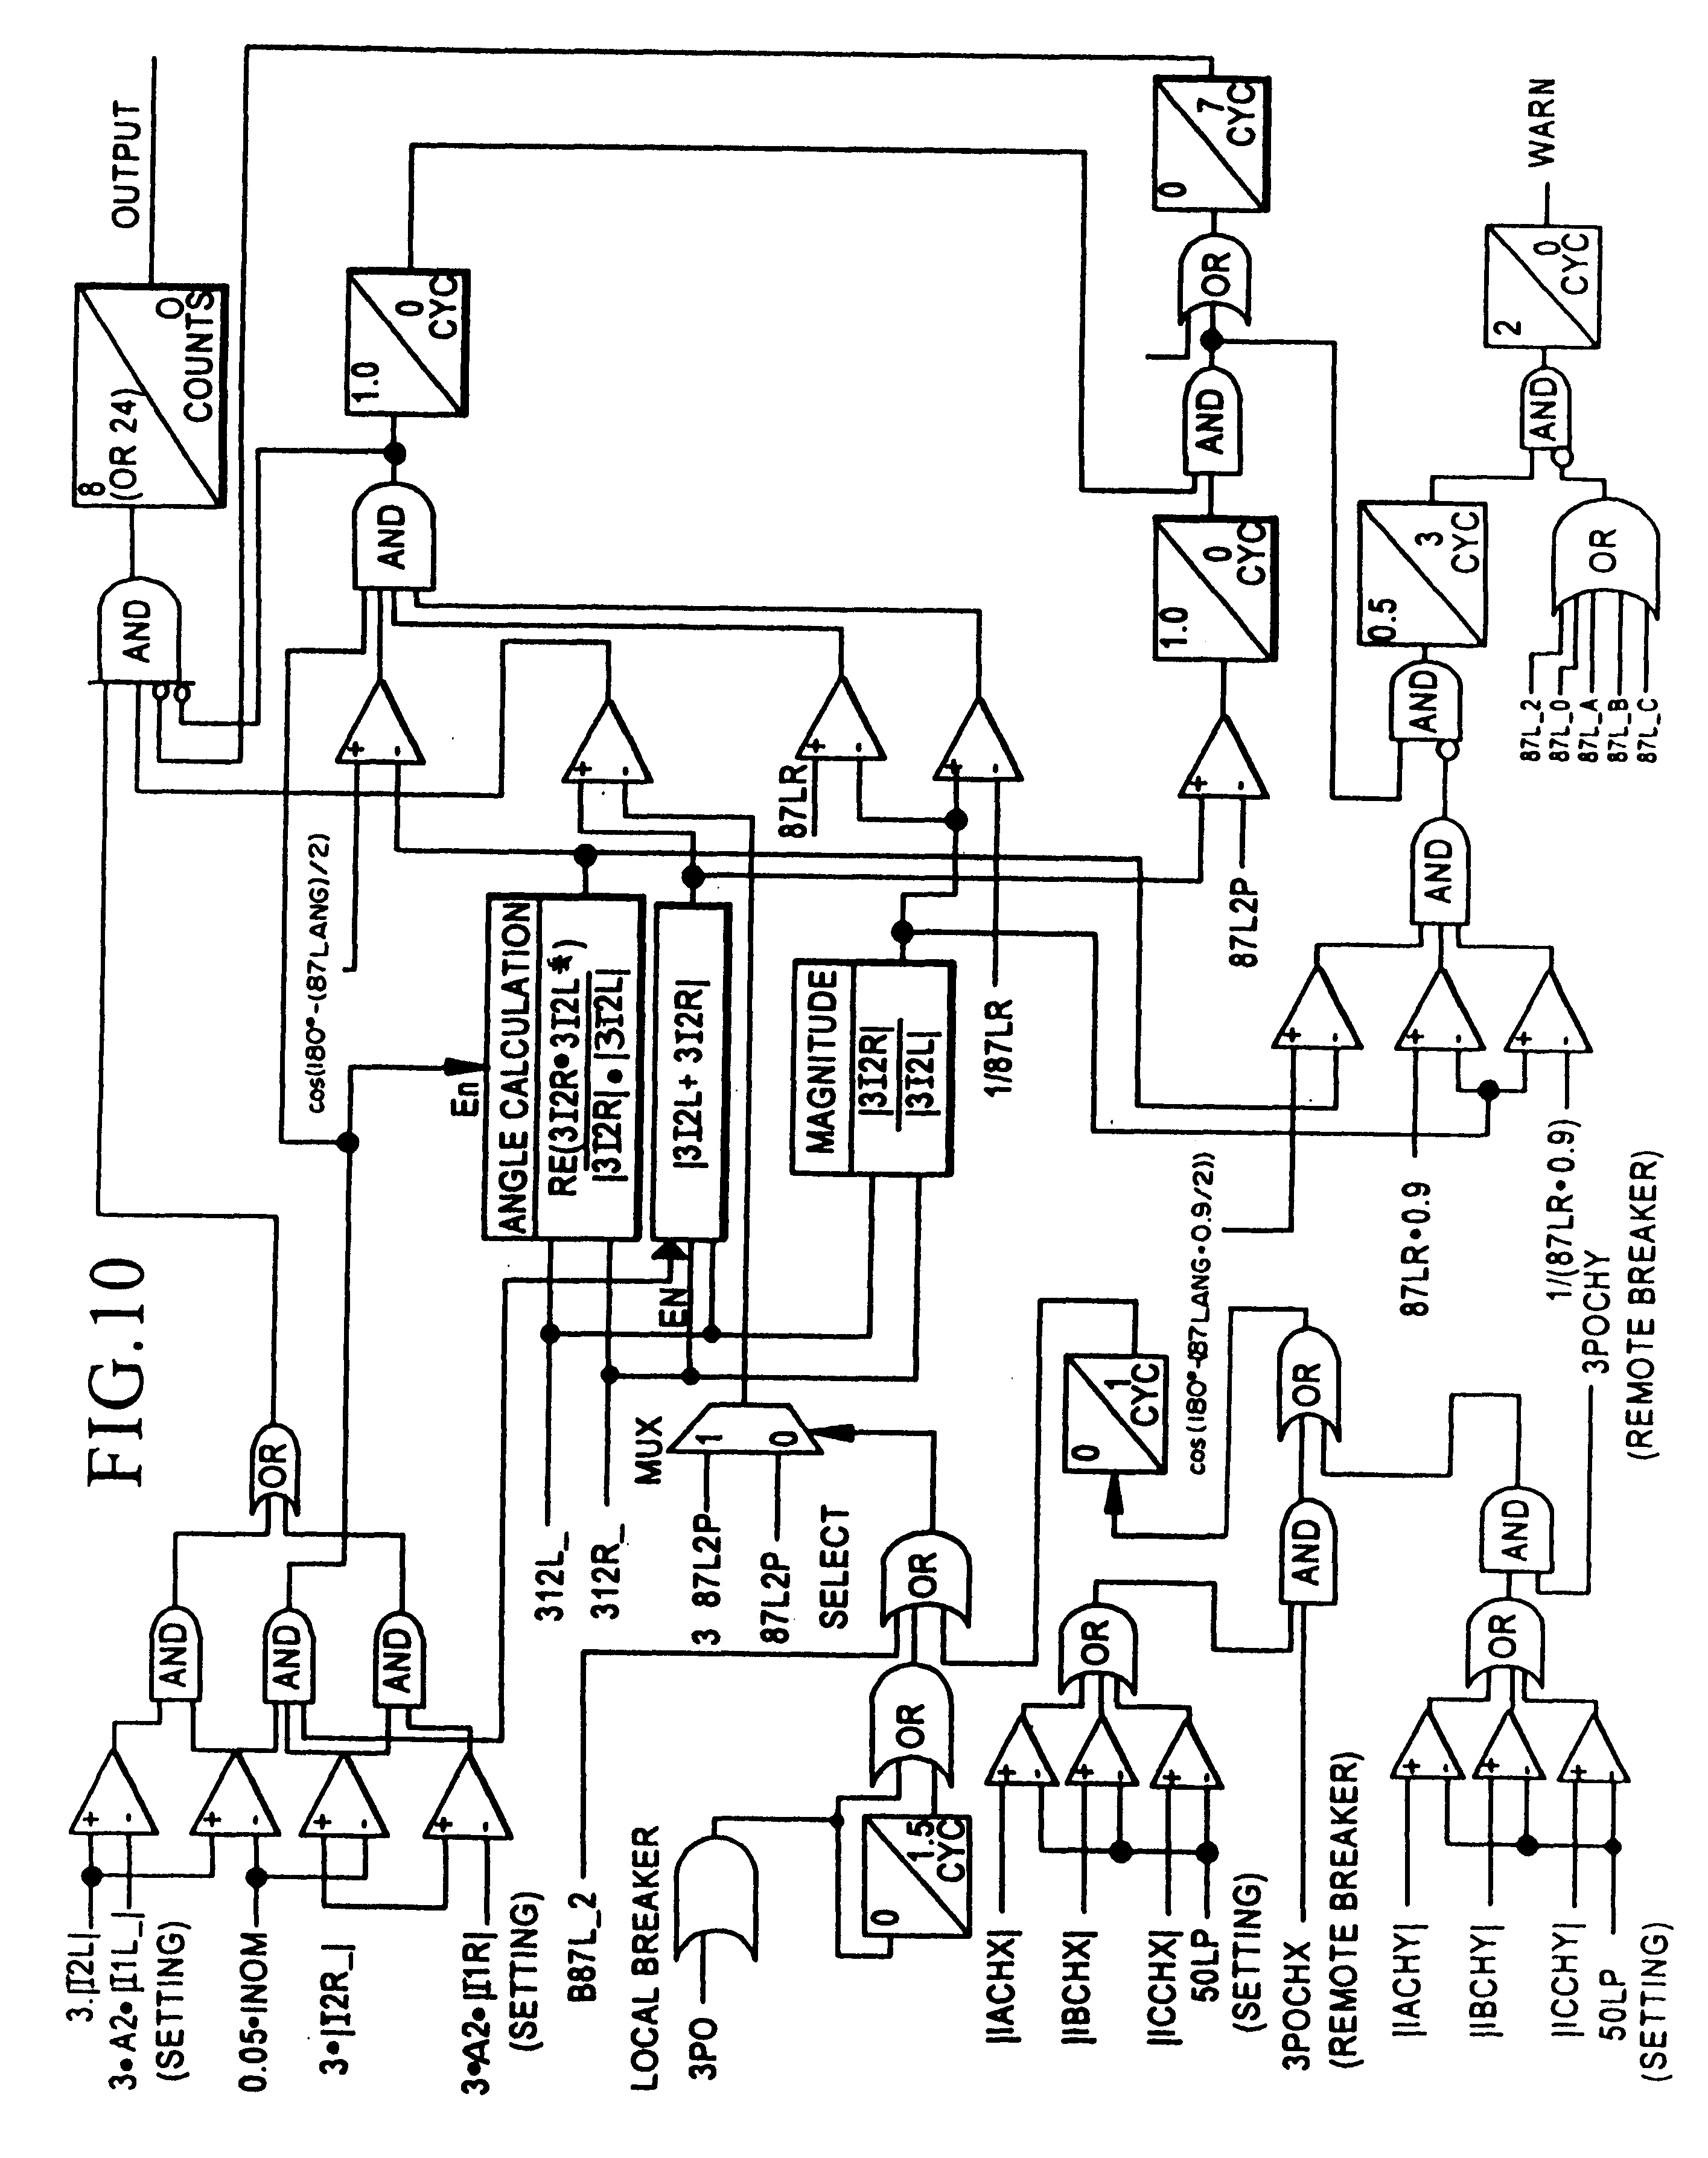 deltum jointer wiring diagram 3 Phase Step Down Transformer Wiring Diagram hight resolution of patent us6590397 line differential protection system for a power deltum wye transformer schematic